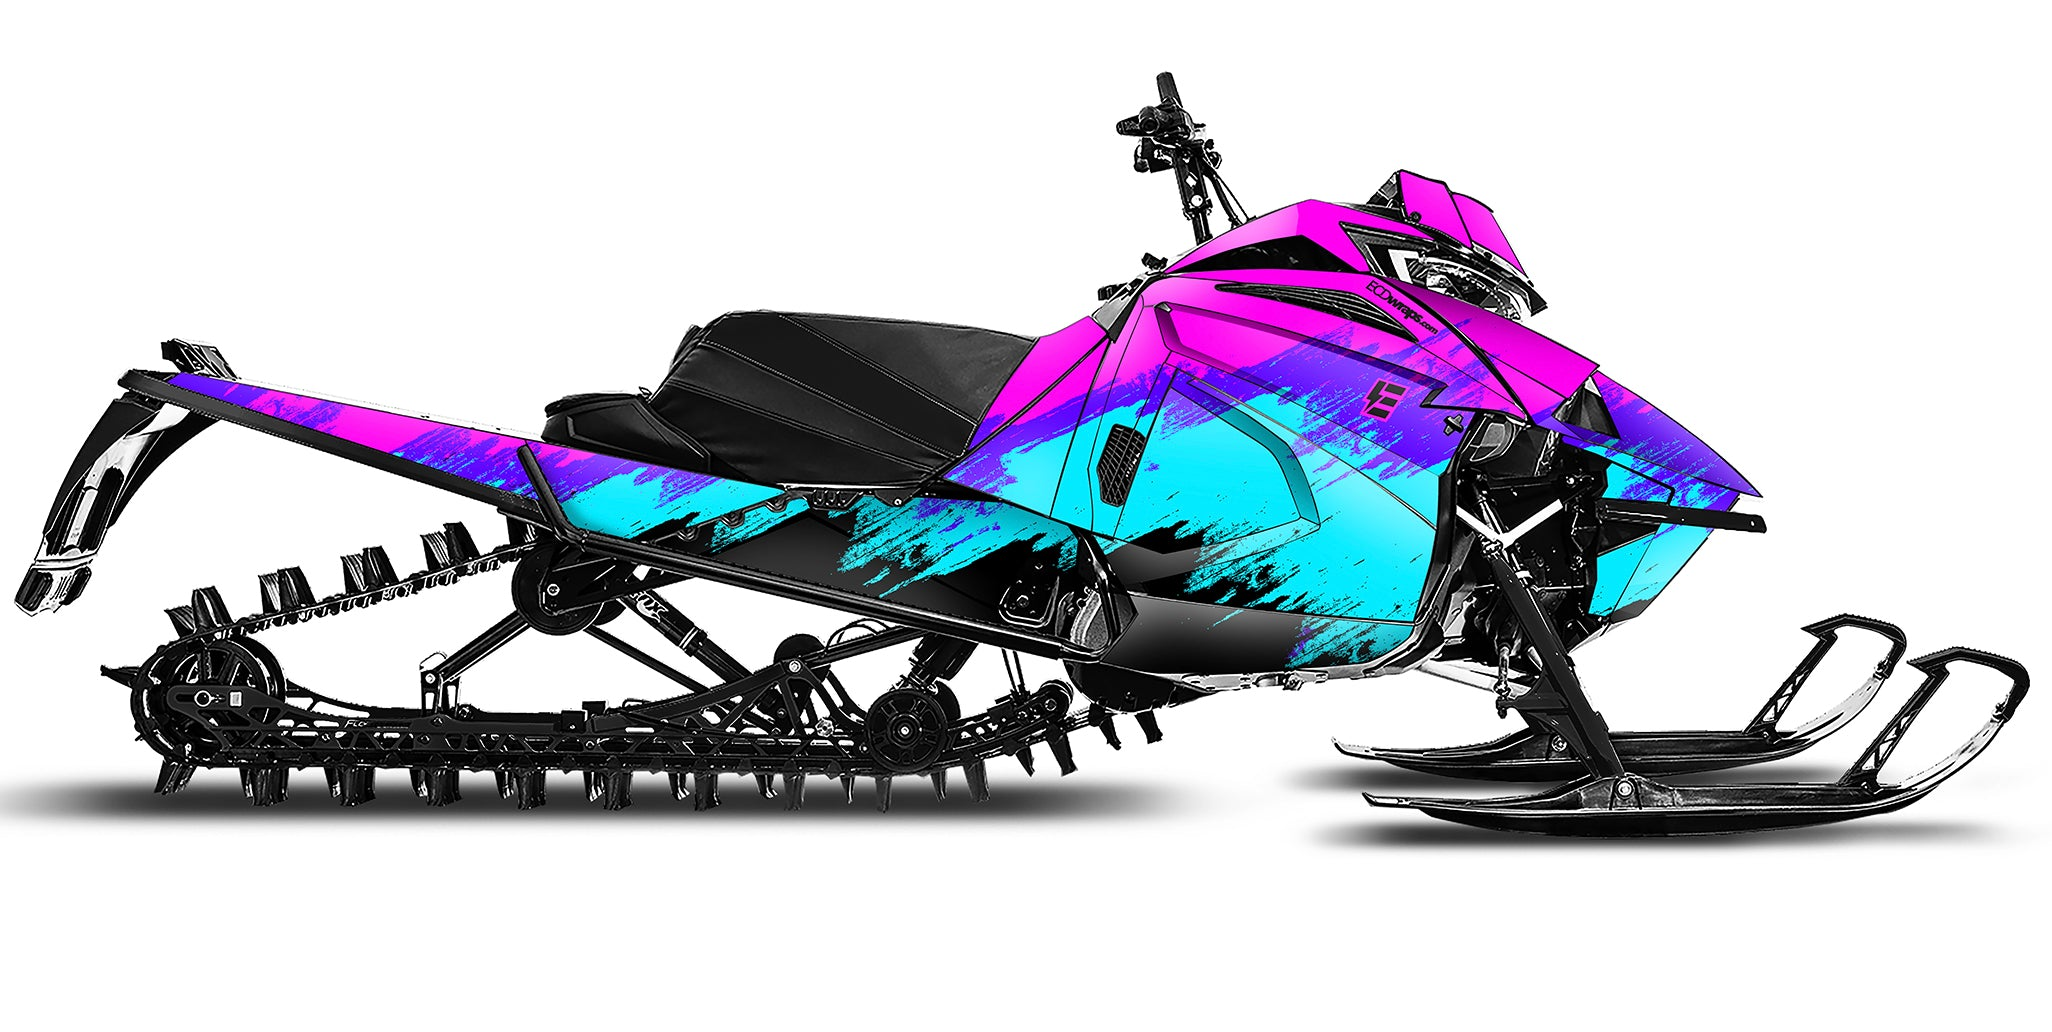 ARCTIC CAT - MARKED